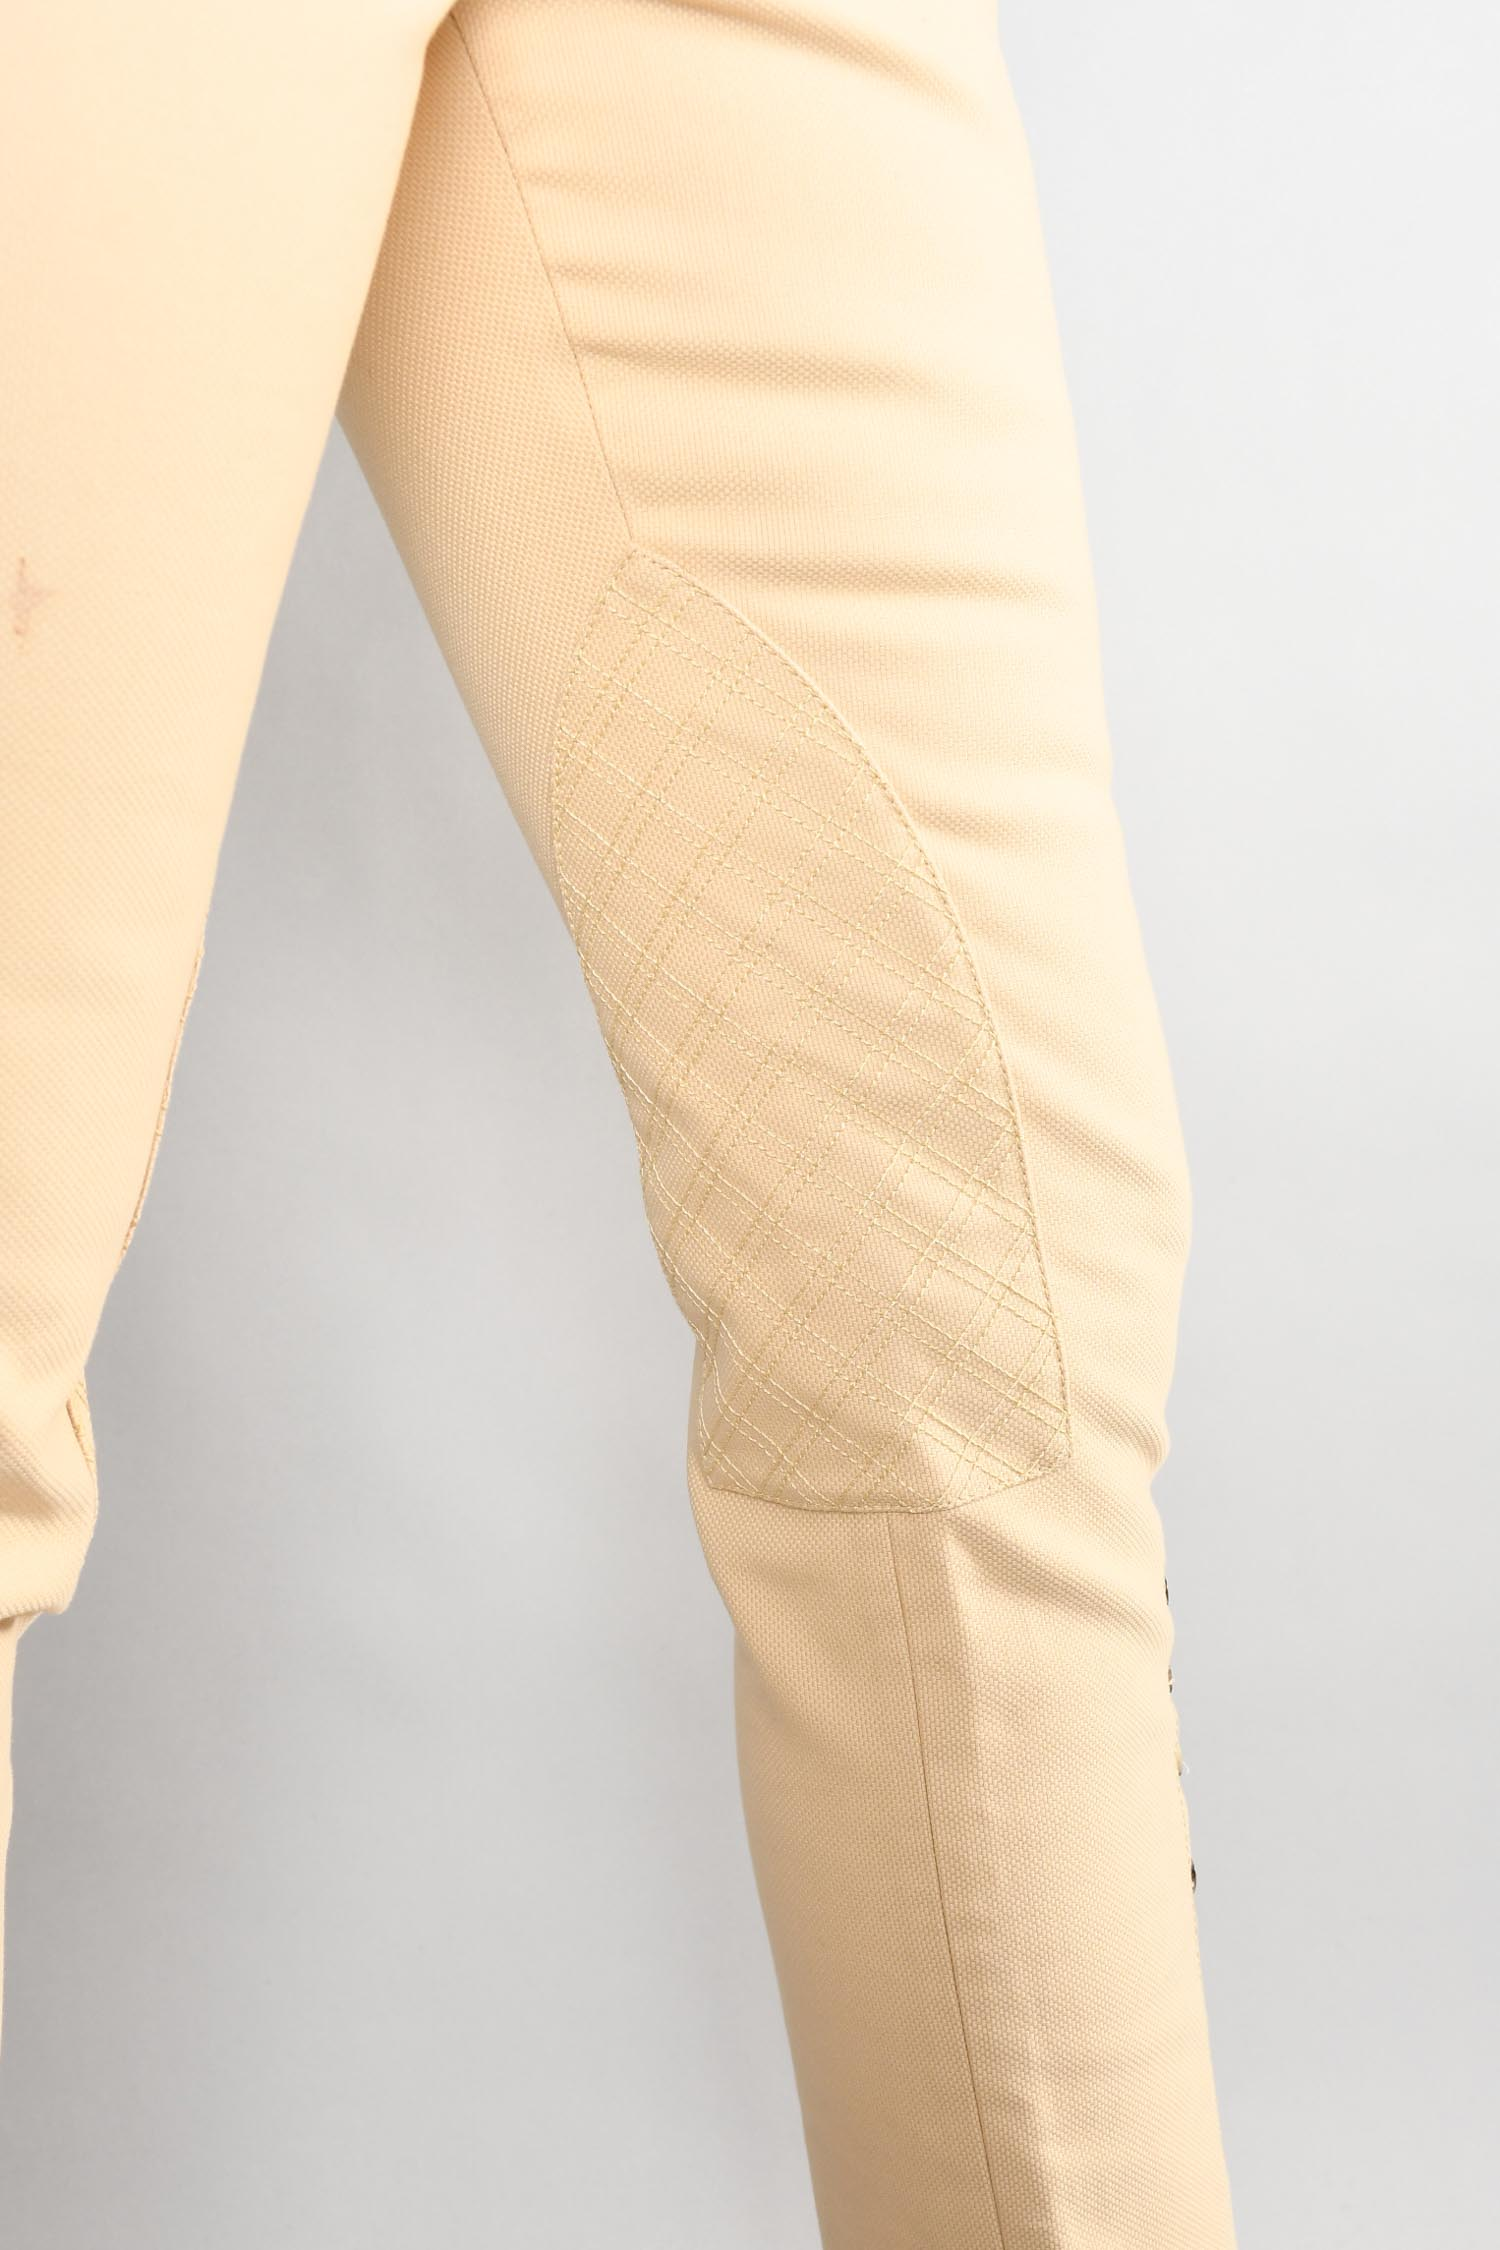 Hermes Cream Cotton Pants w/ Buttoned Cuffs Size 36